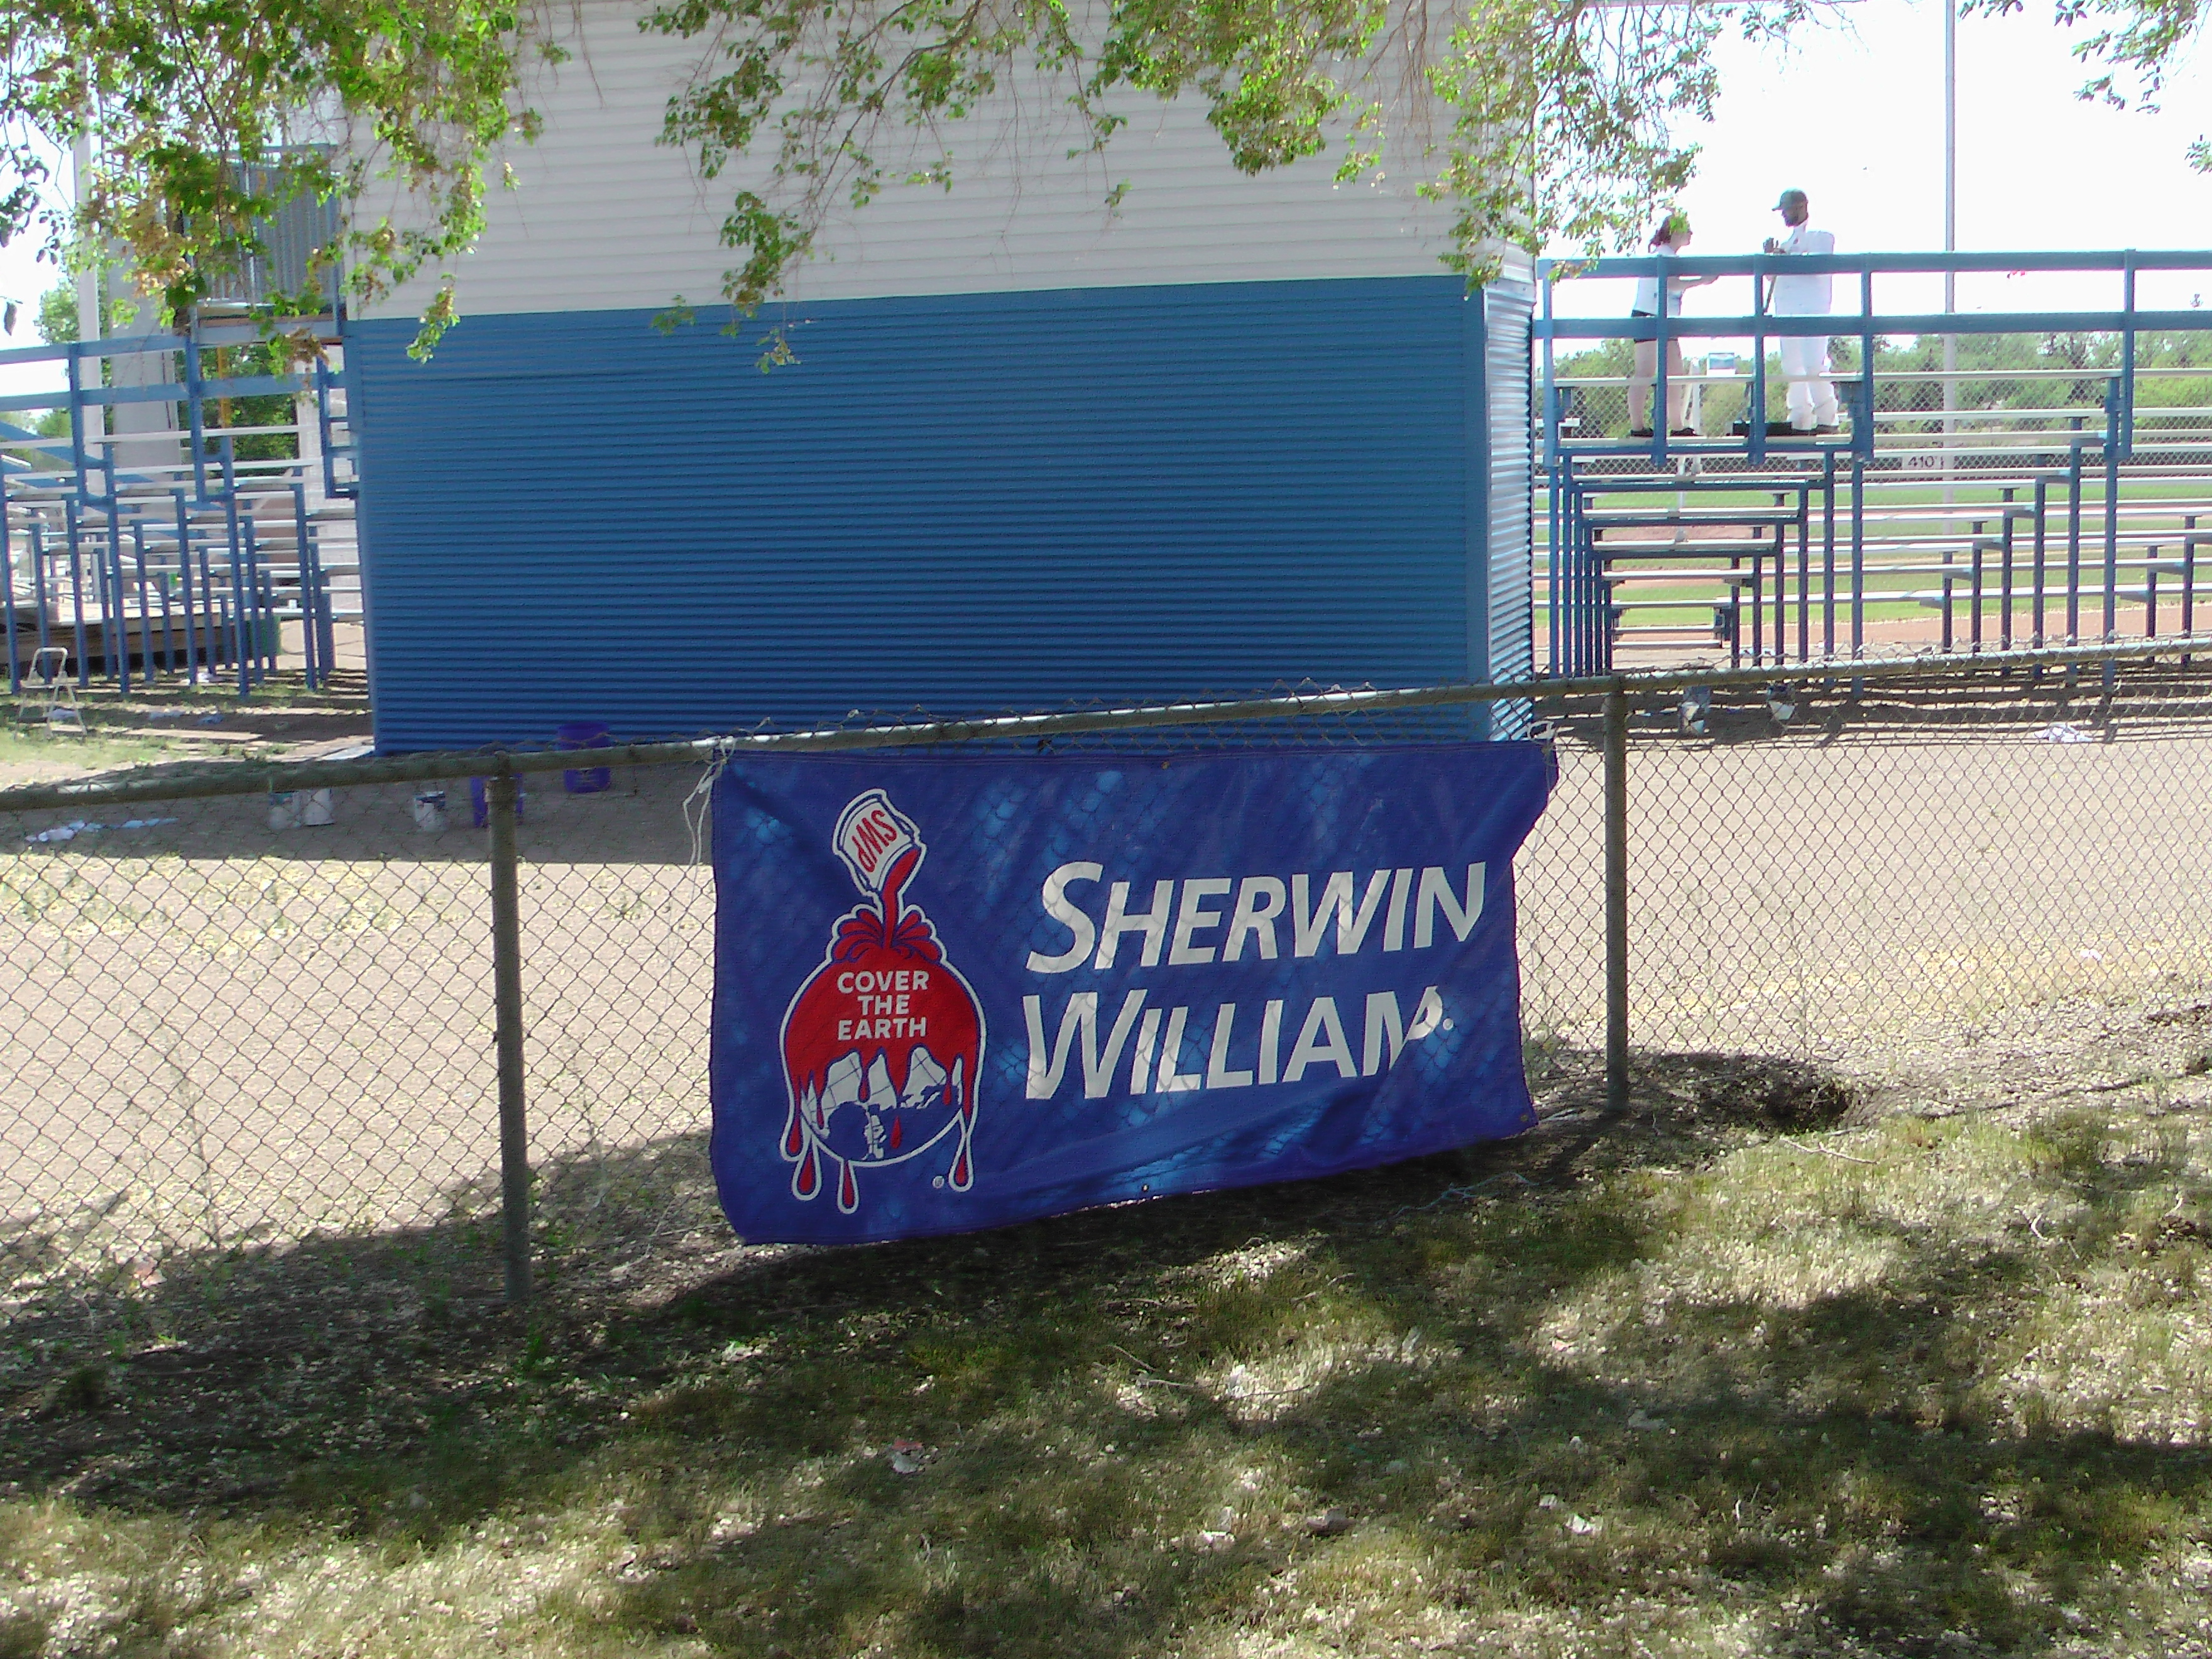 A BIG Thank You to Sherwin Williams and Staff for Supplying Volunteers and Paint for the Park! Video and Pics! - Image 2